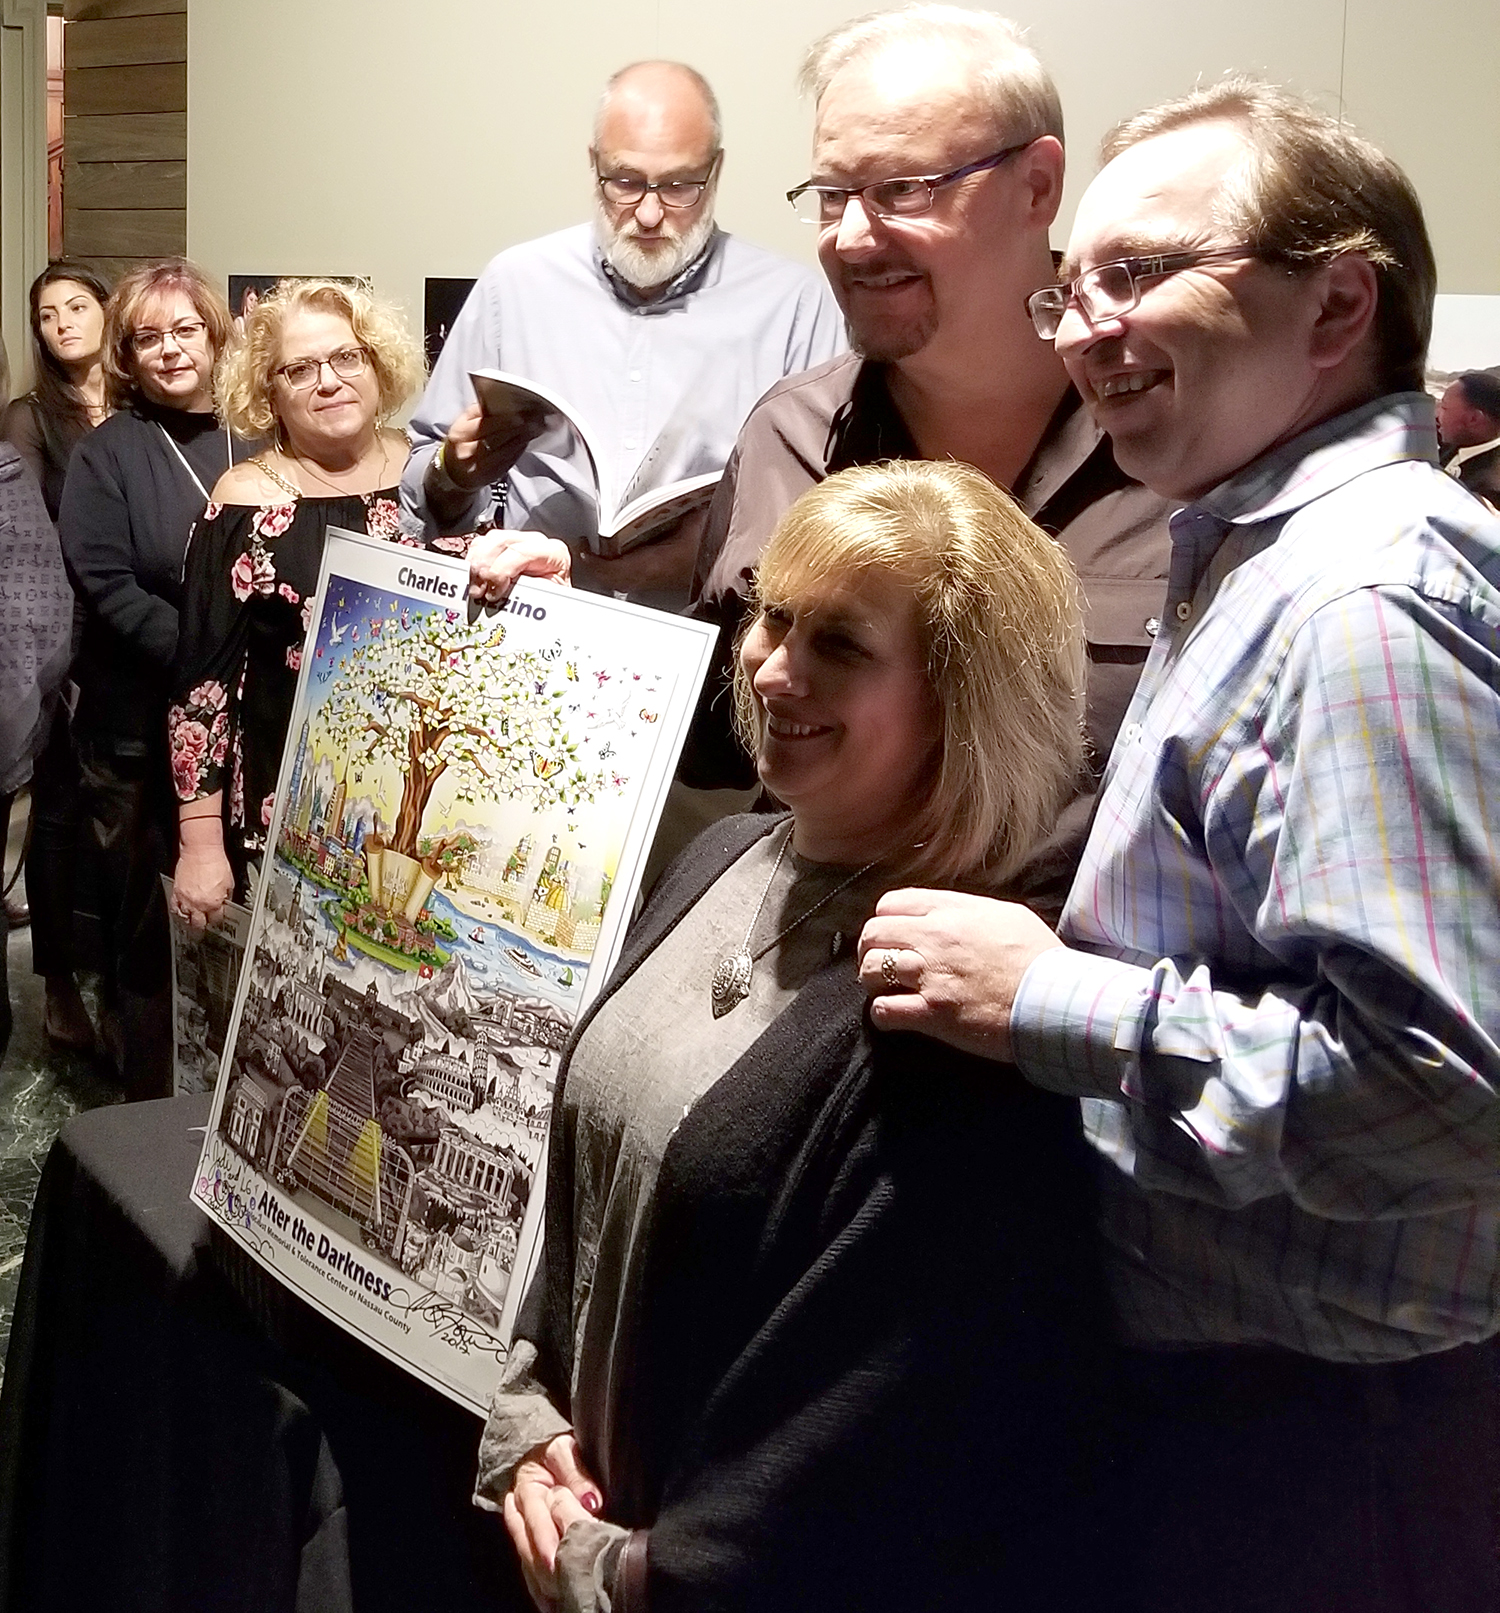 """Charles Fazzino and friends gathered to take a photo with a """"After the Darkness"""" signed pop art print"""